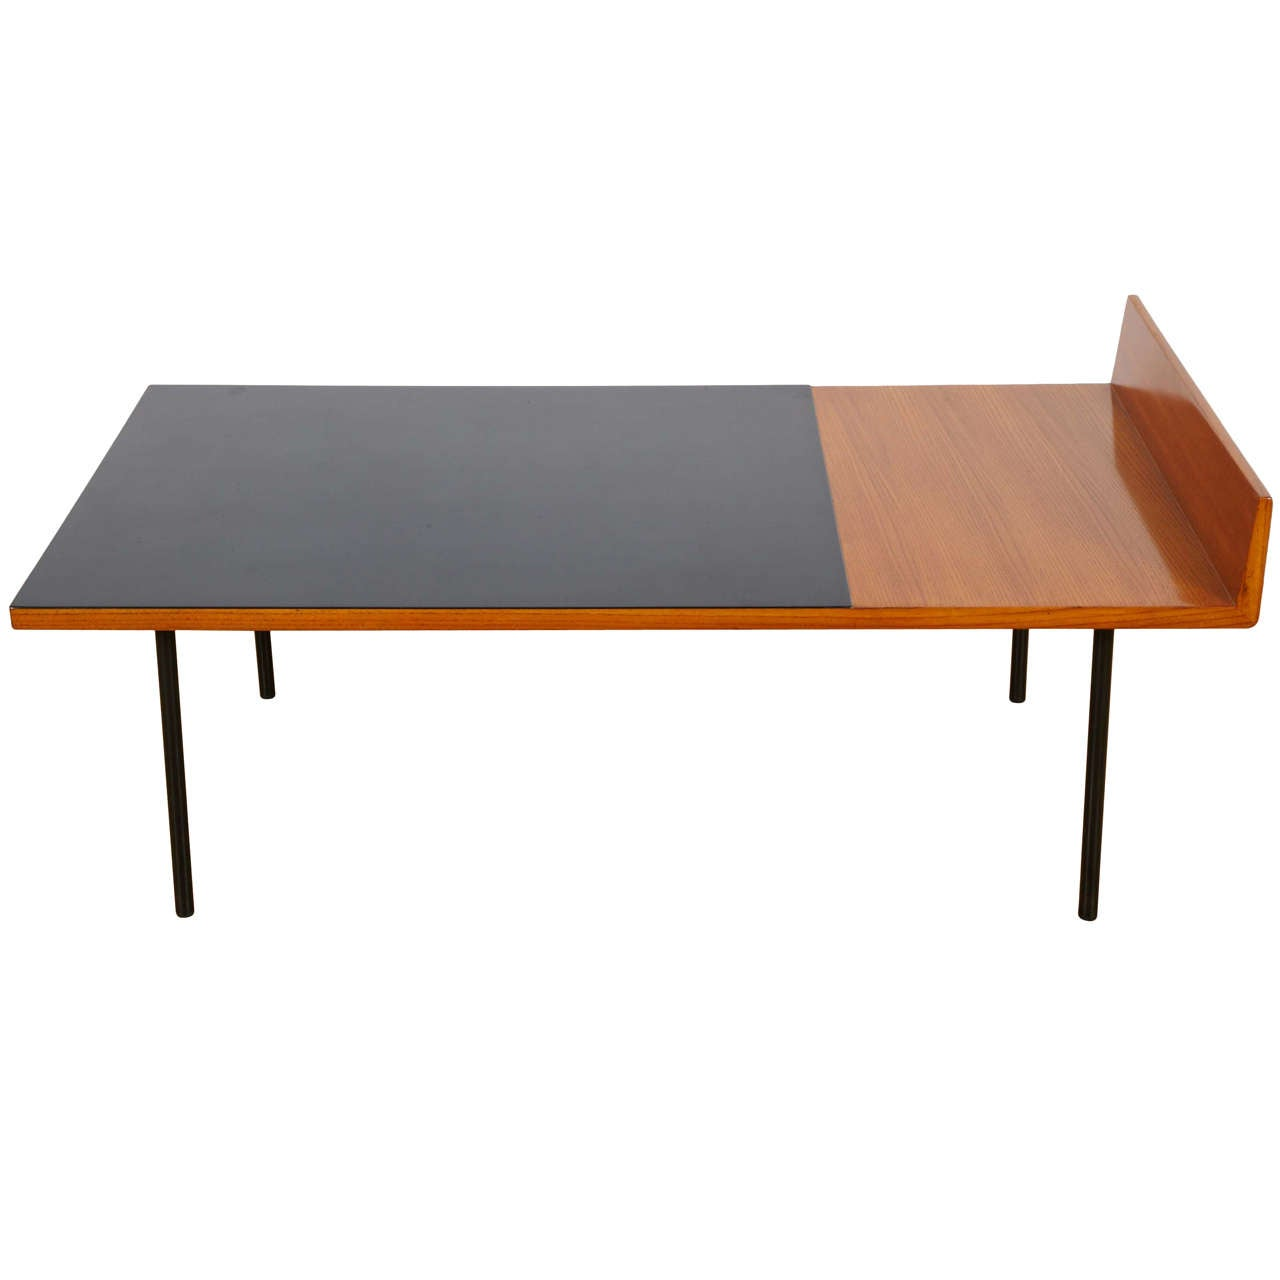 low table model 132 by andr monpoix meubles tv edition 1953 1954 at 1stdibs. Black Bedroom Furniture Sets. Home Design Ideas